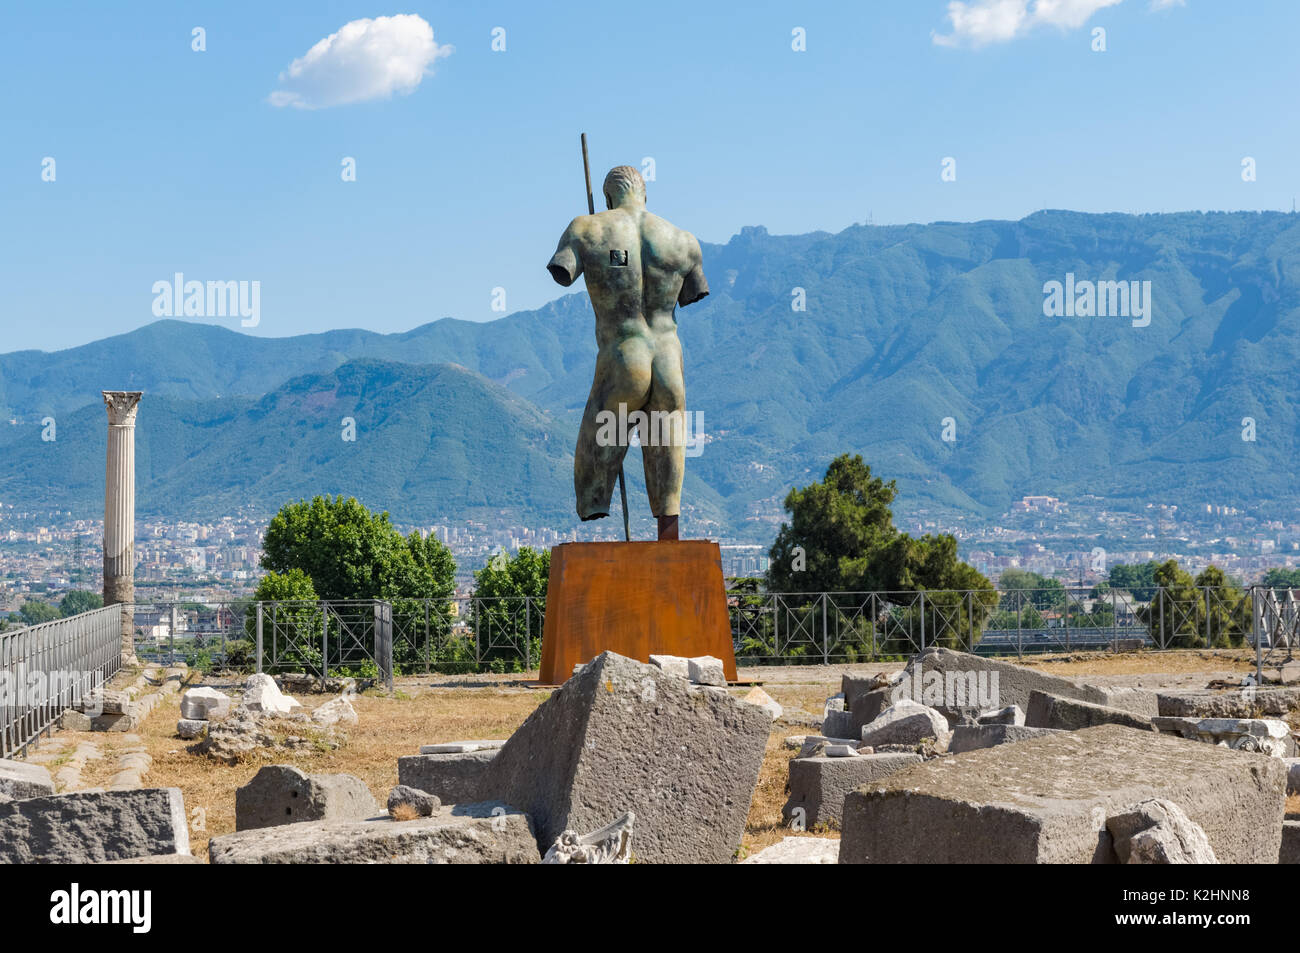 Igor Mitoraj bronze sculpture at the Roman ruins of Pompeii, Italy Stock Photo